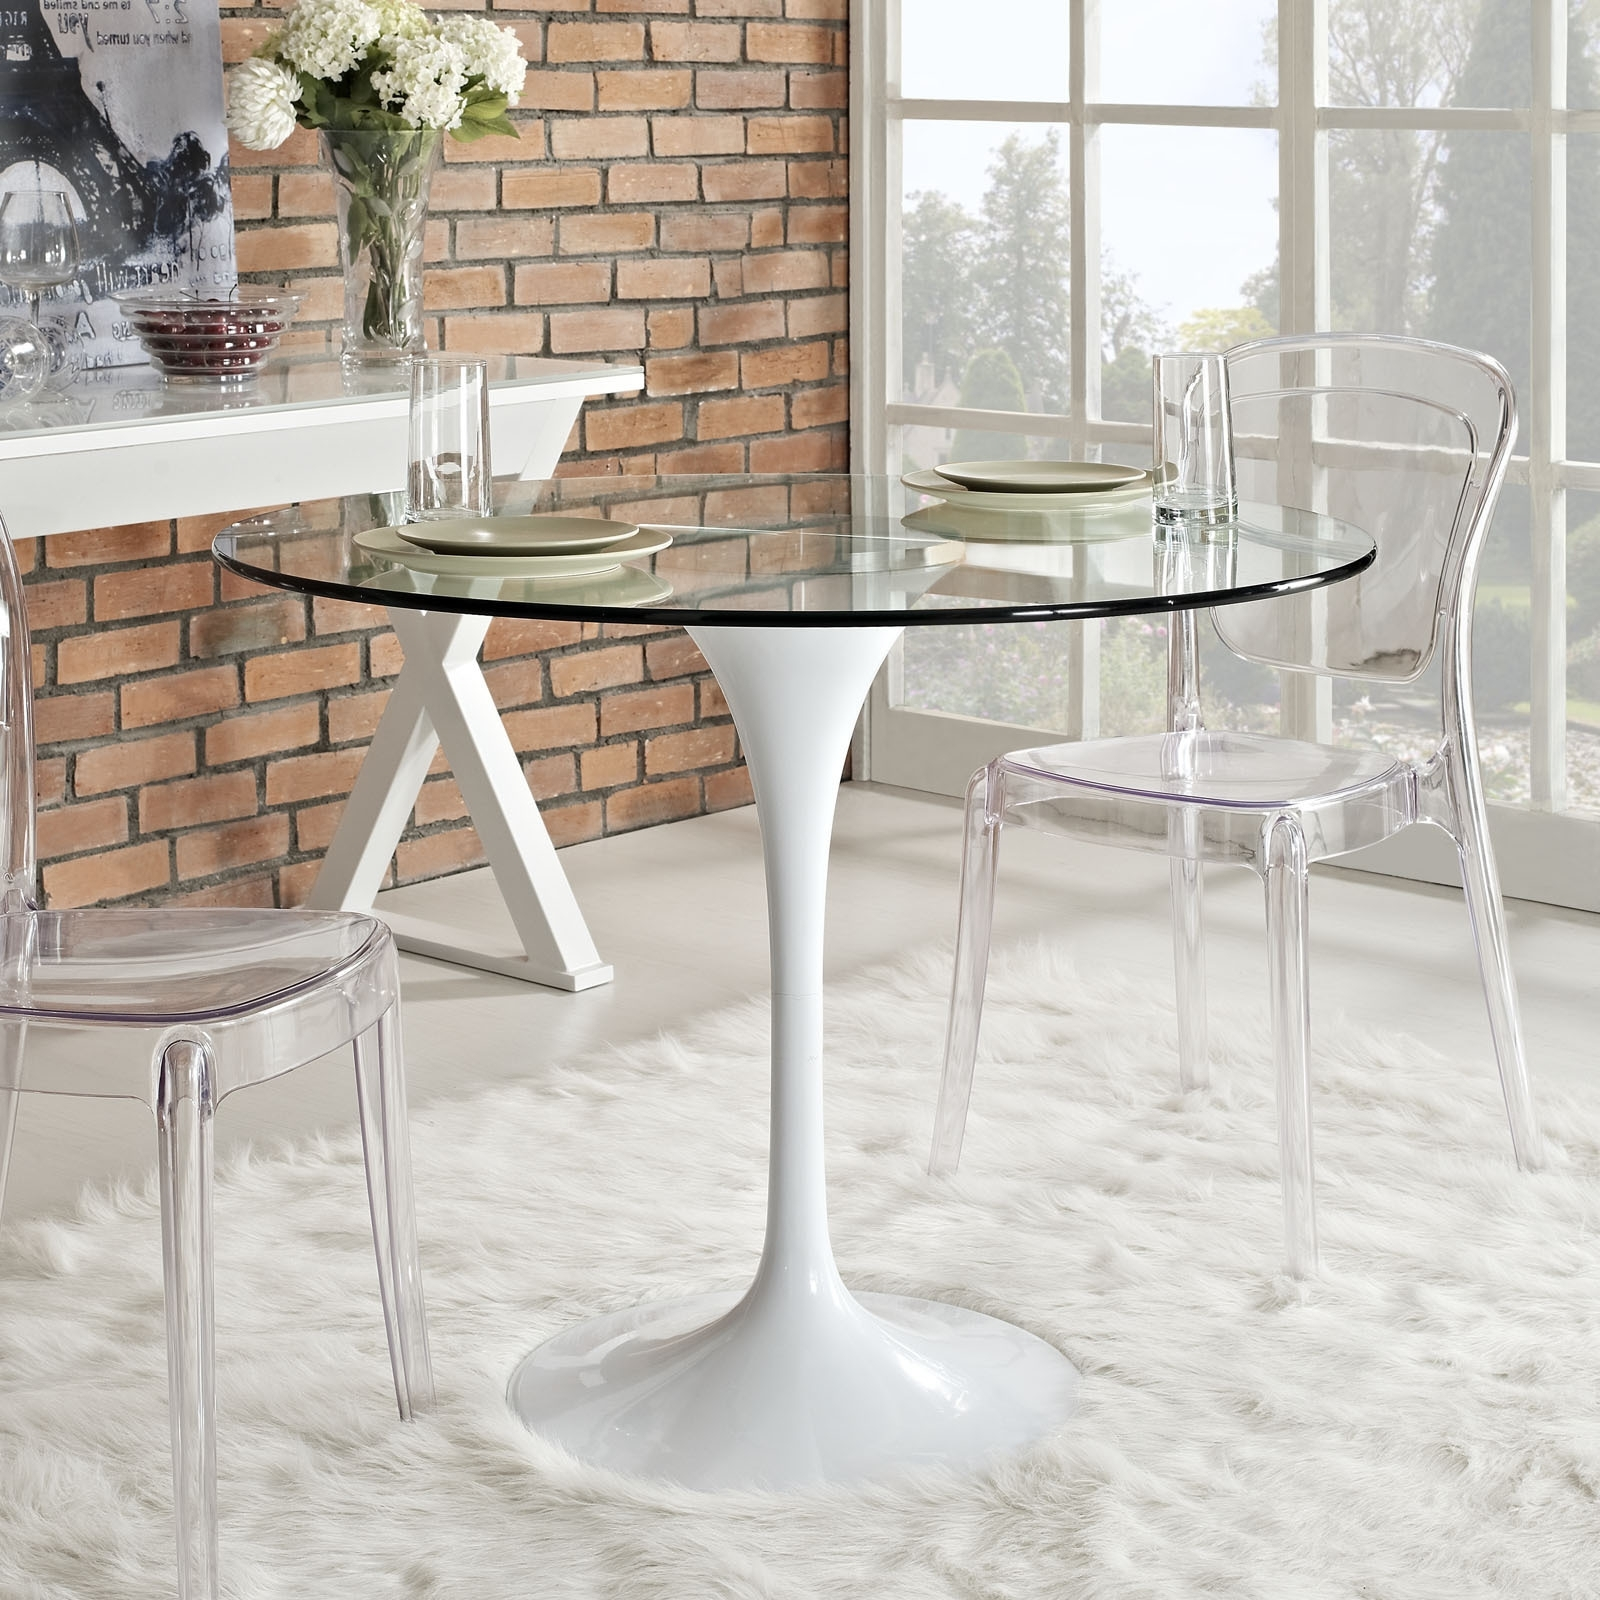 Round Acrylic Dining Tables With Regard To Latest Acrylic Kitchen Table Fresh Kitchen Cool Clear Glass Dining Table (View 22 of 25)